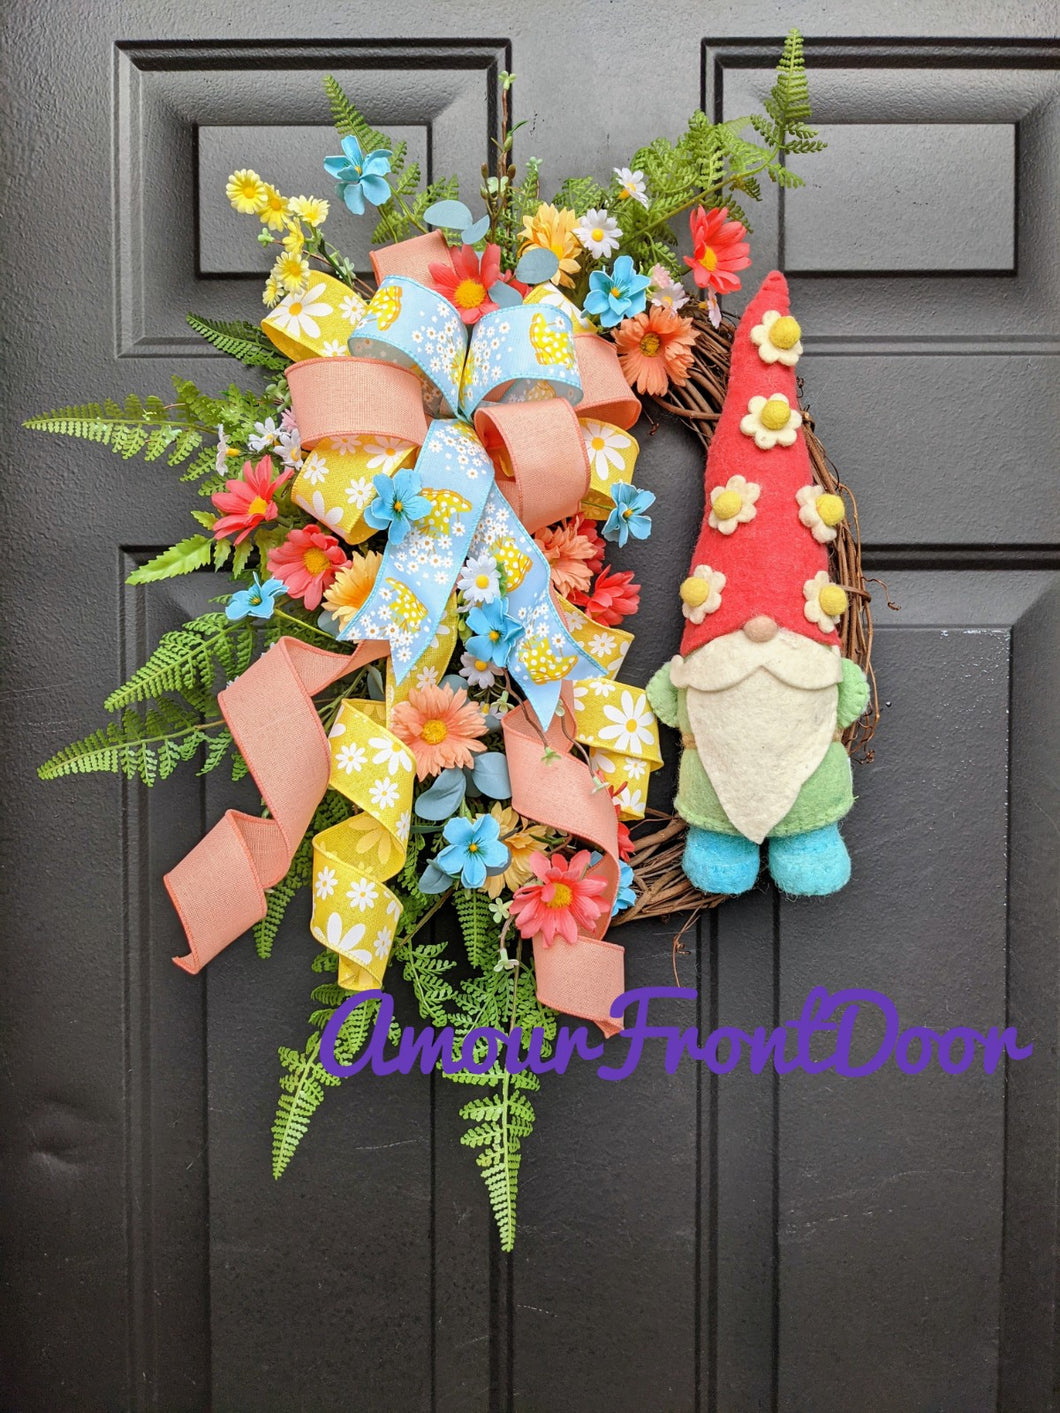 Spring Gnome Wreath, Gnome Wreath, Gnome Decor, Spring Grapevine Wreath, Grapevine Floral Wreath